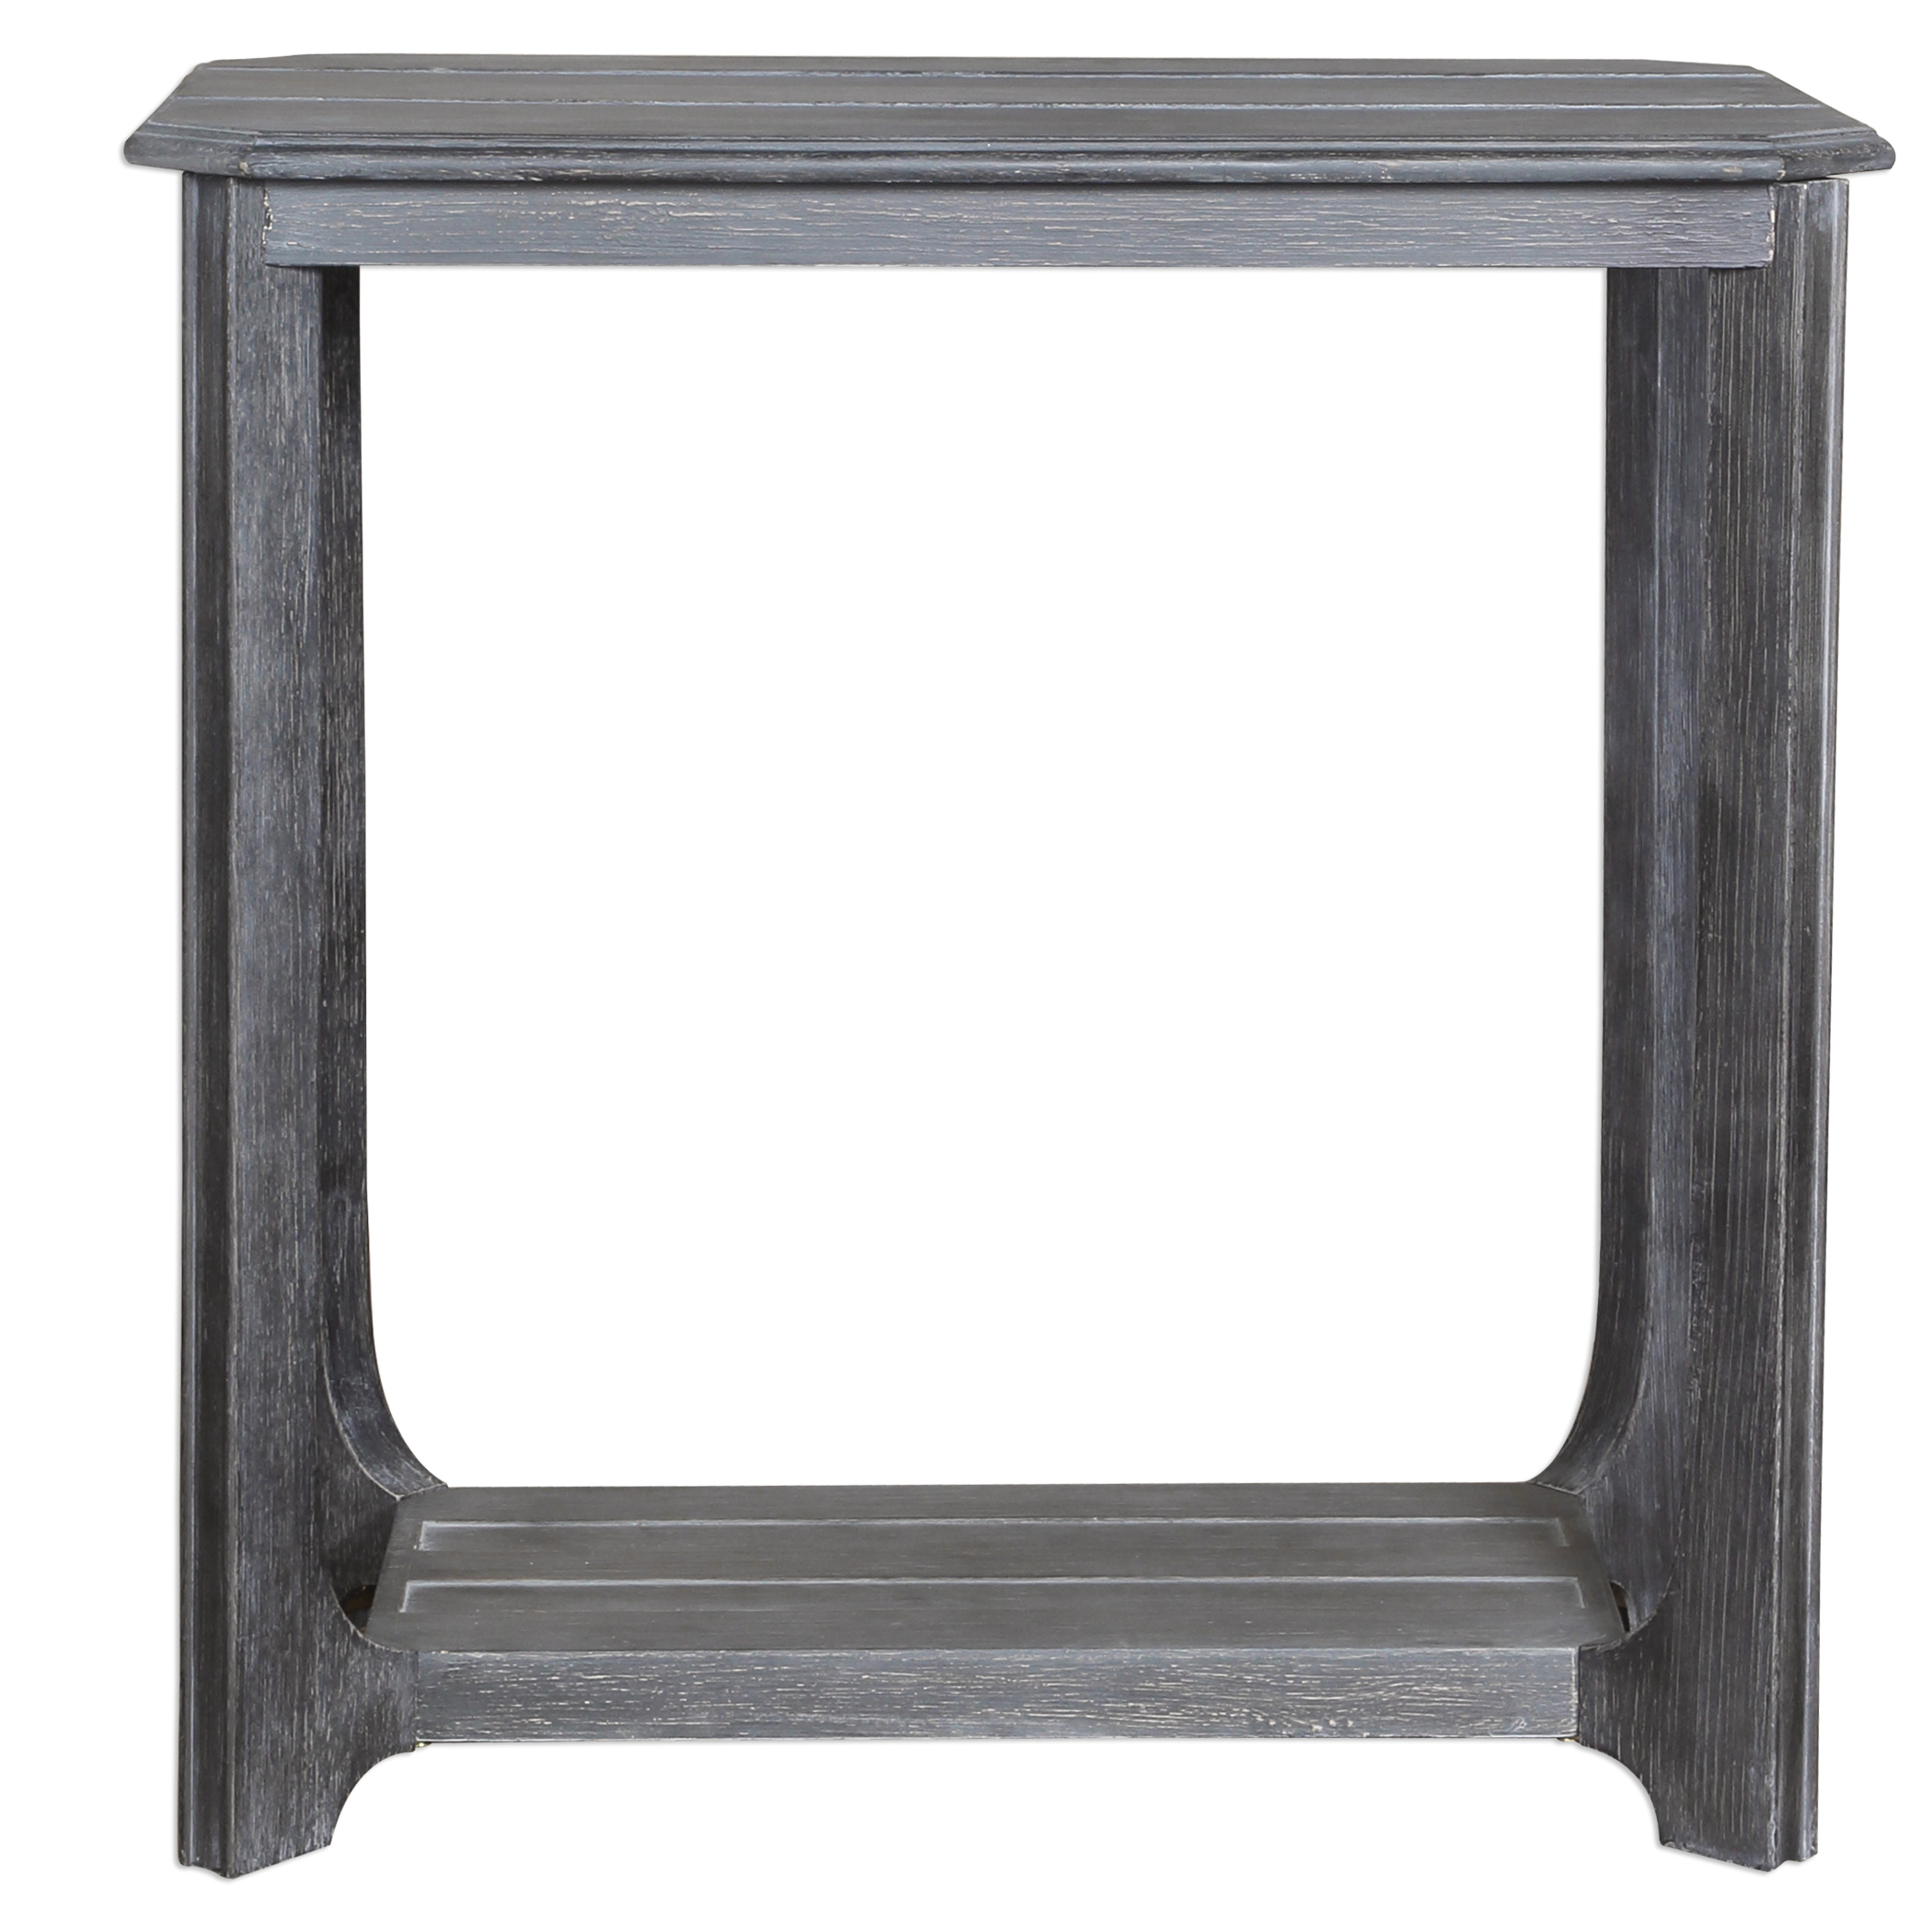 Uttermost Accent Furniture Garroway Wood End Table - Item Number: 25928